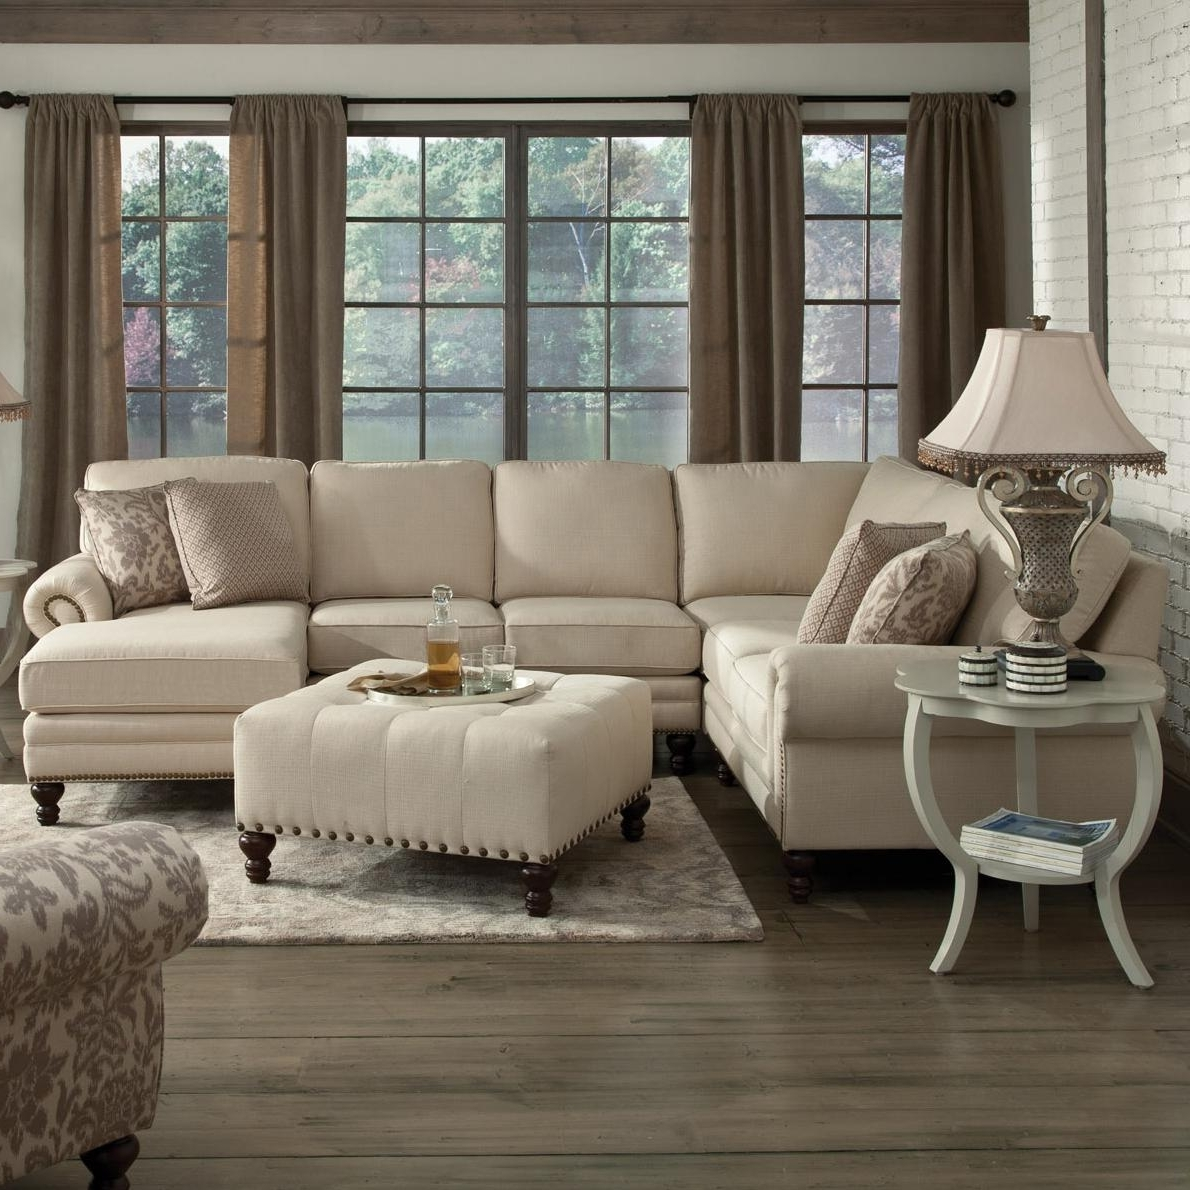 Popular Kansas City Mo Sectional Sofas For England Amix Six Seat Sectional With Right Chaise – Ahfa – Sofa (View 10 of 20)